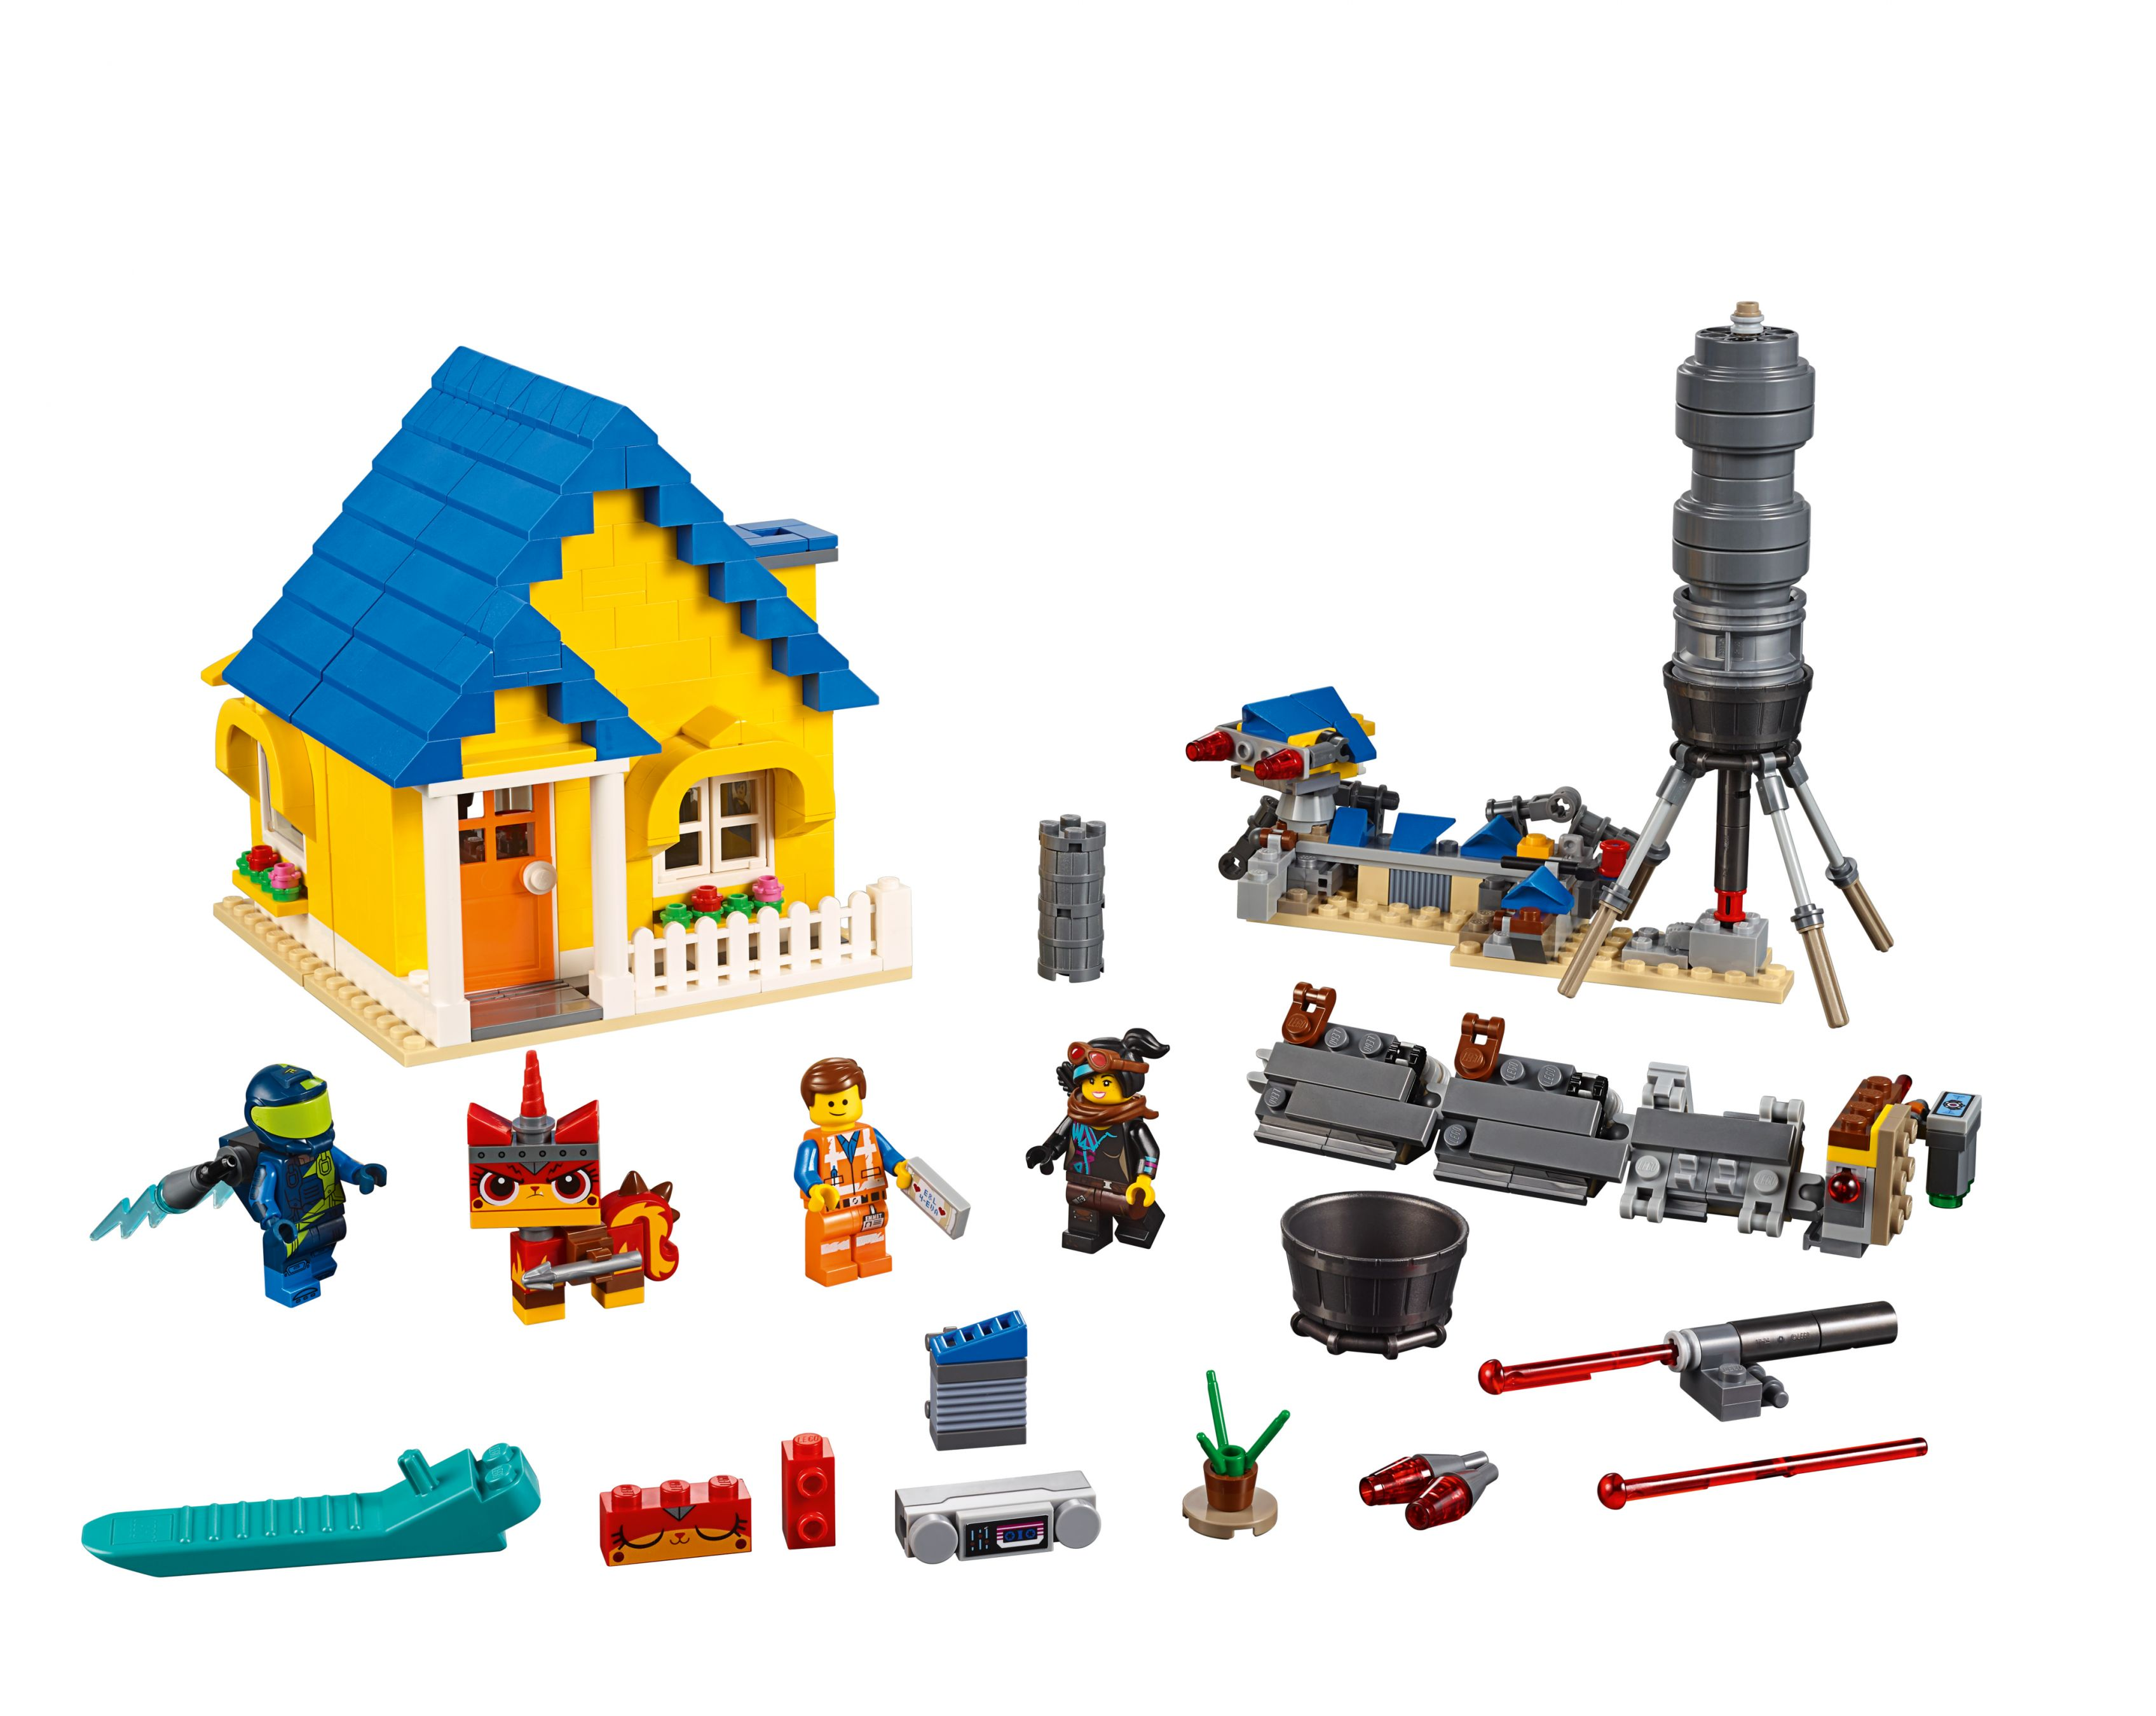 LEGO The LEGO Movie 70831 Emmets Traumhaus/Rettungsrakete!